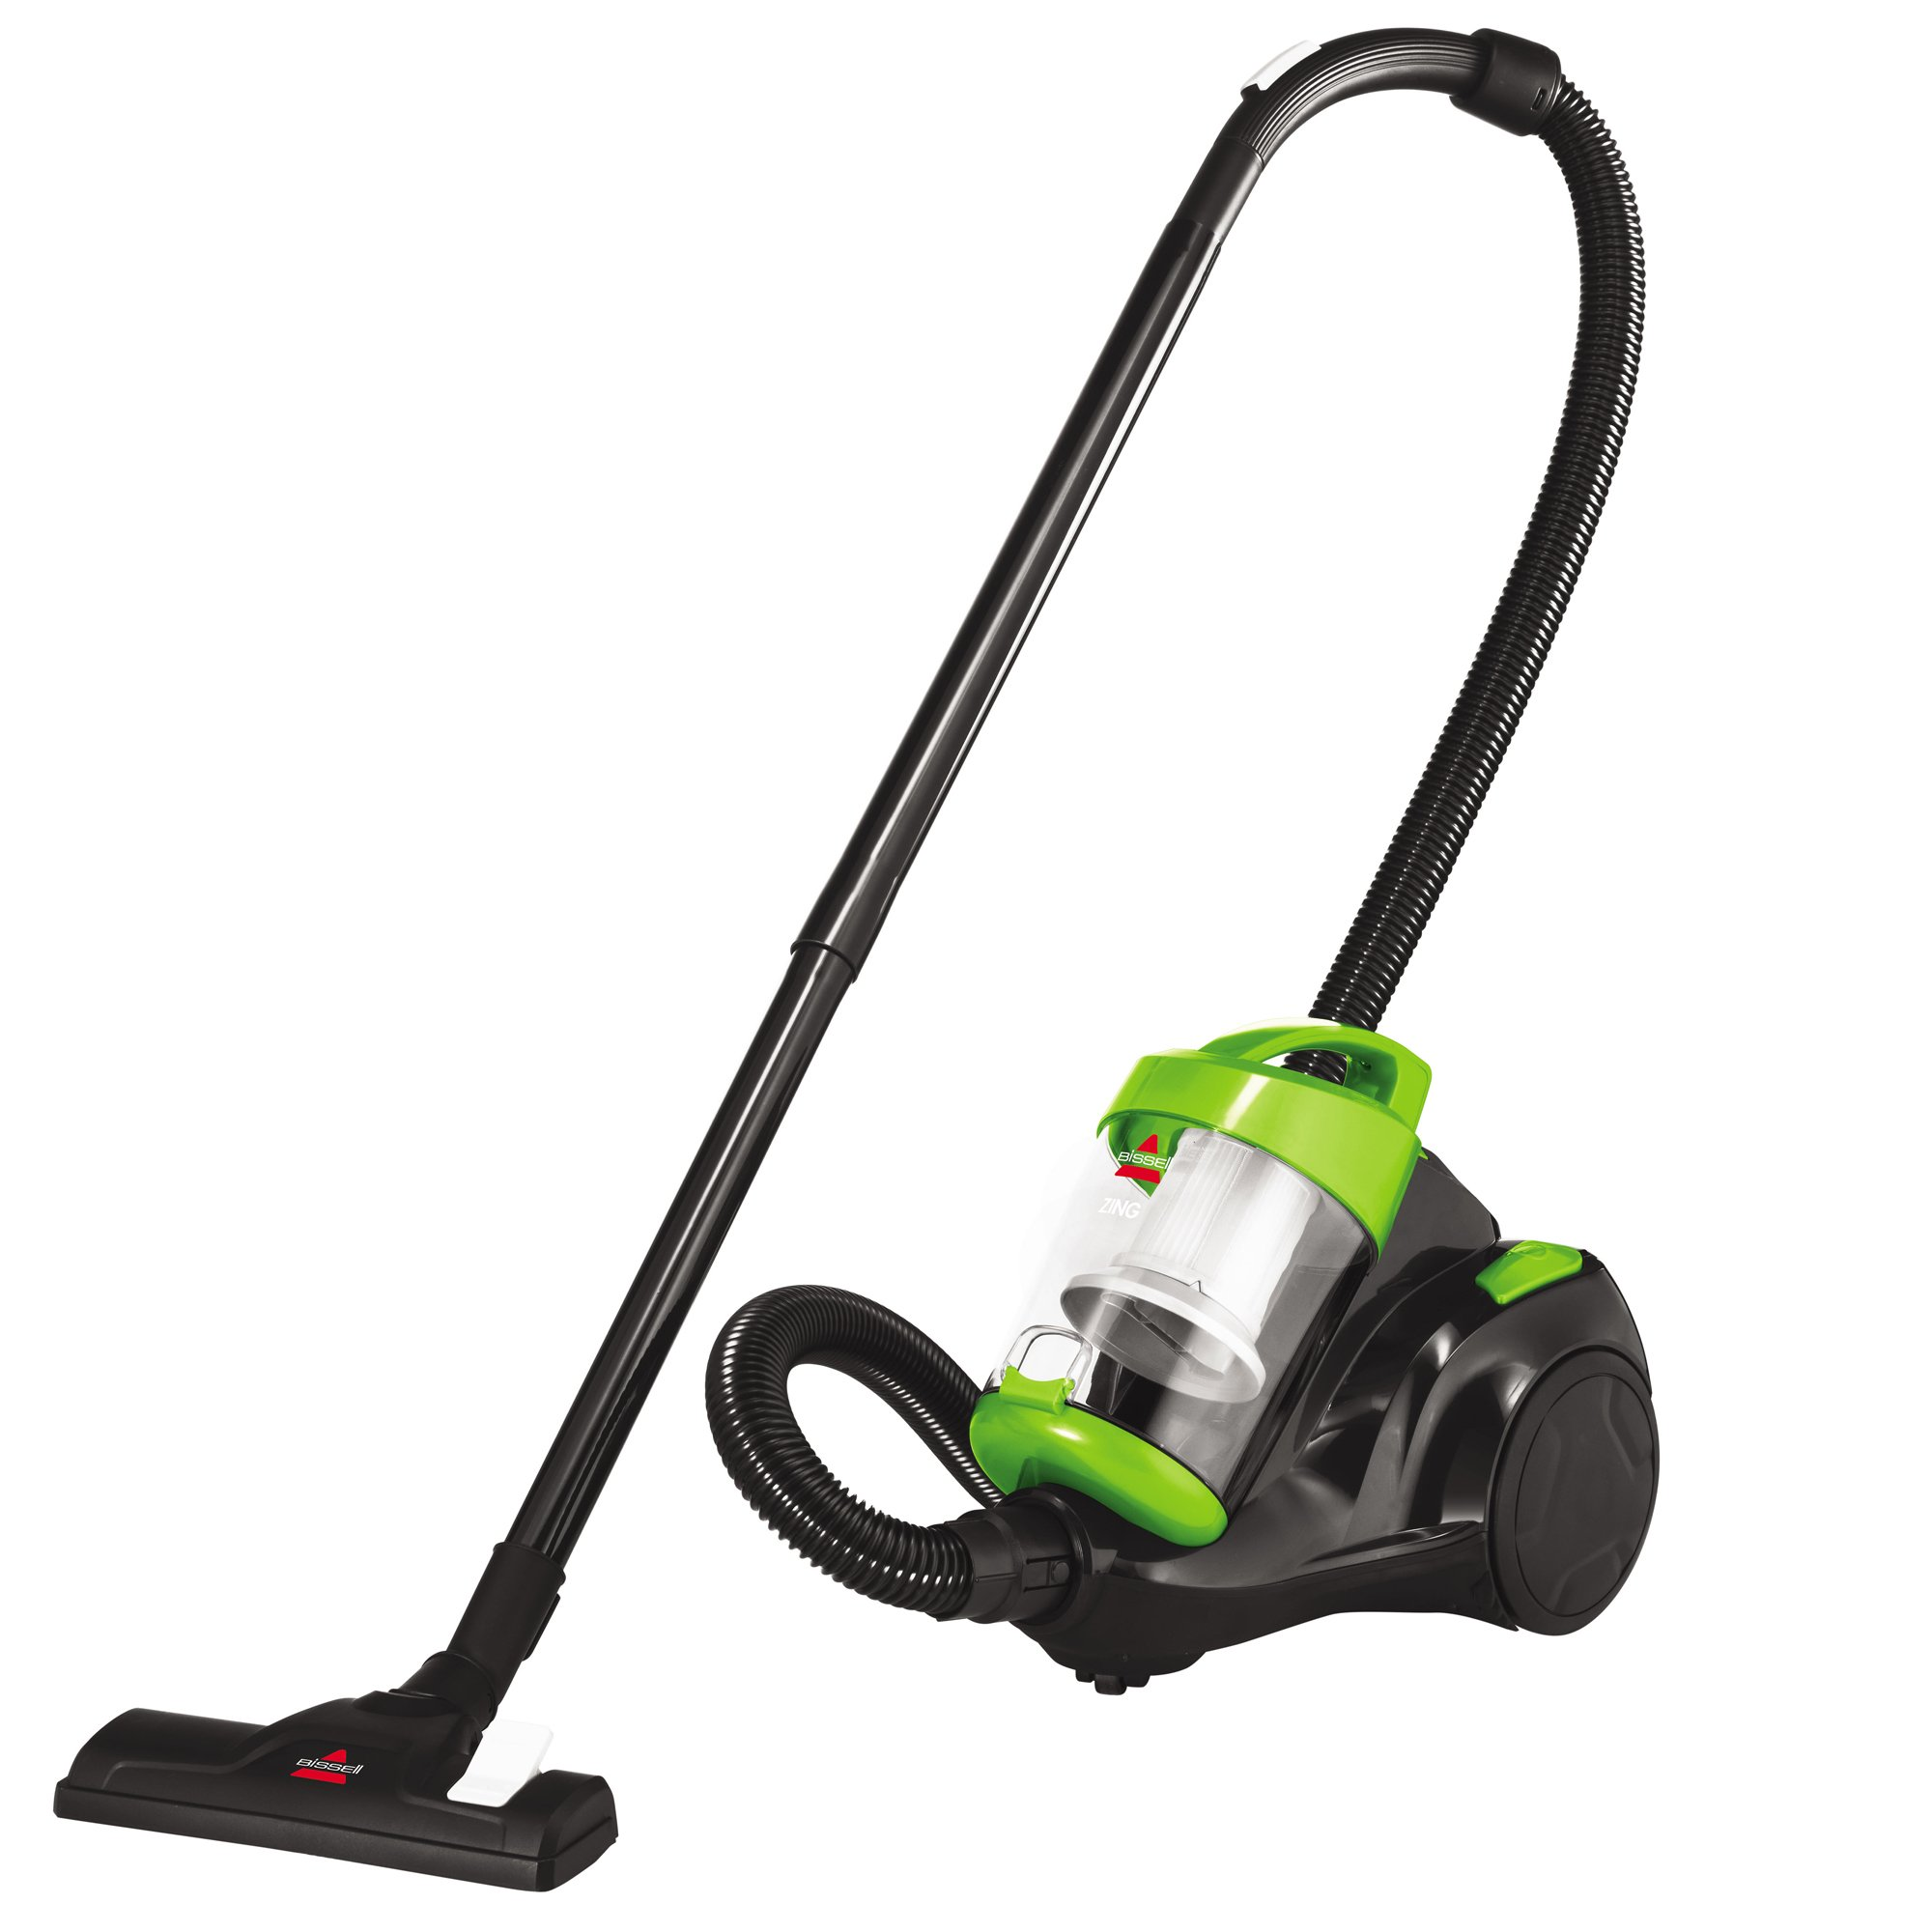 Bissell Zing Canister, 2156A Bagless Vacuum, Green by Bissell